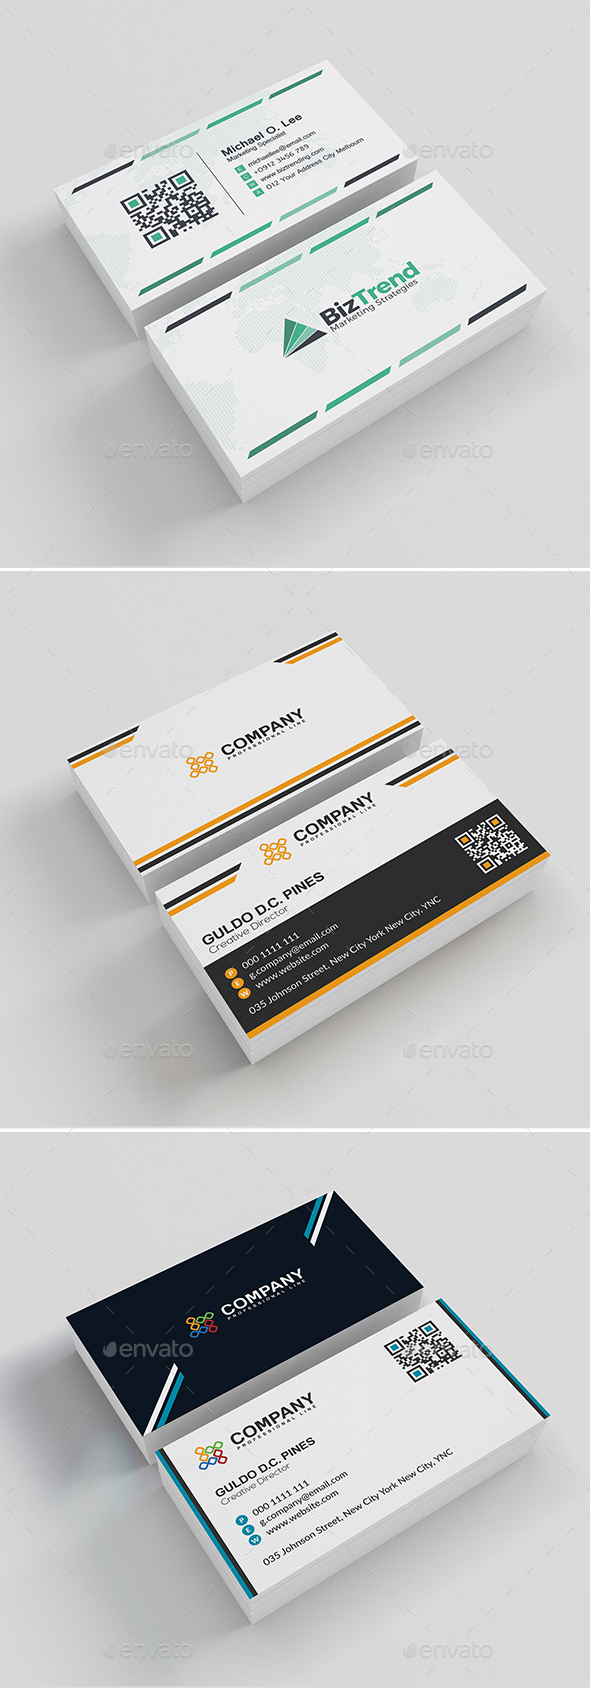 3 In 1 Business Card Bundle V.3 - Business Cards Print Templates